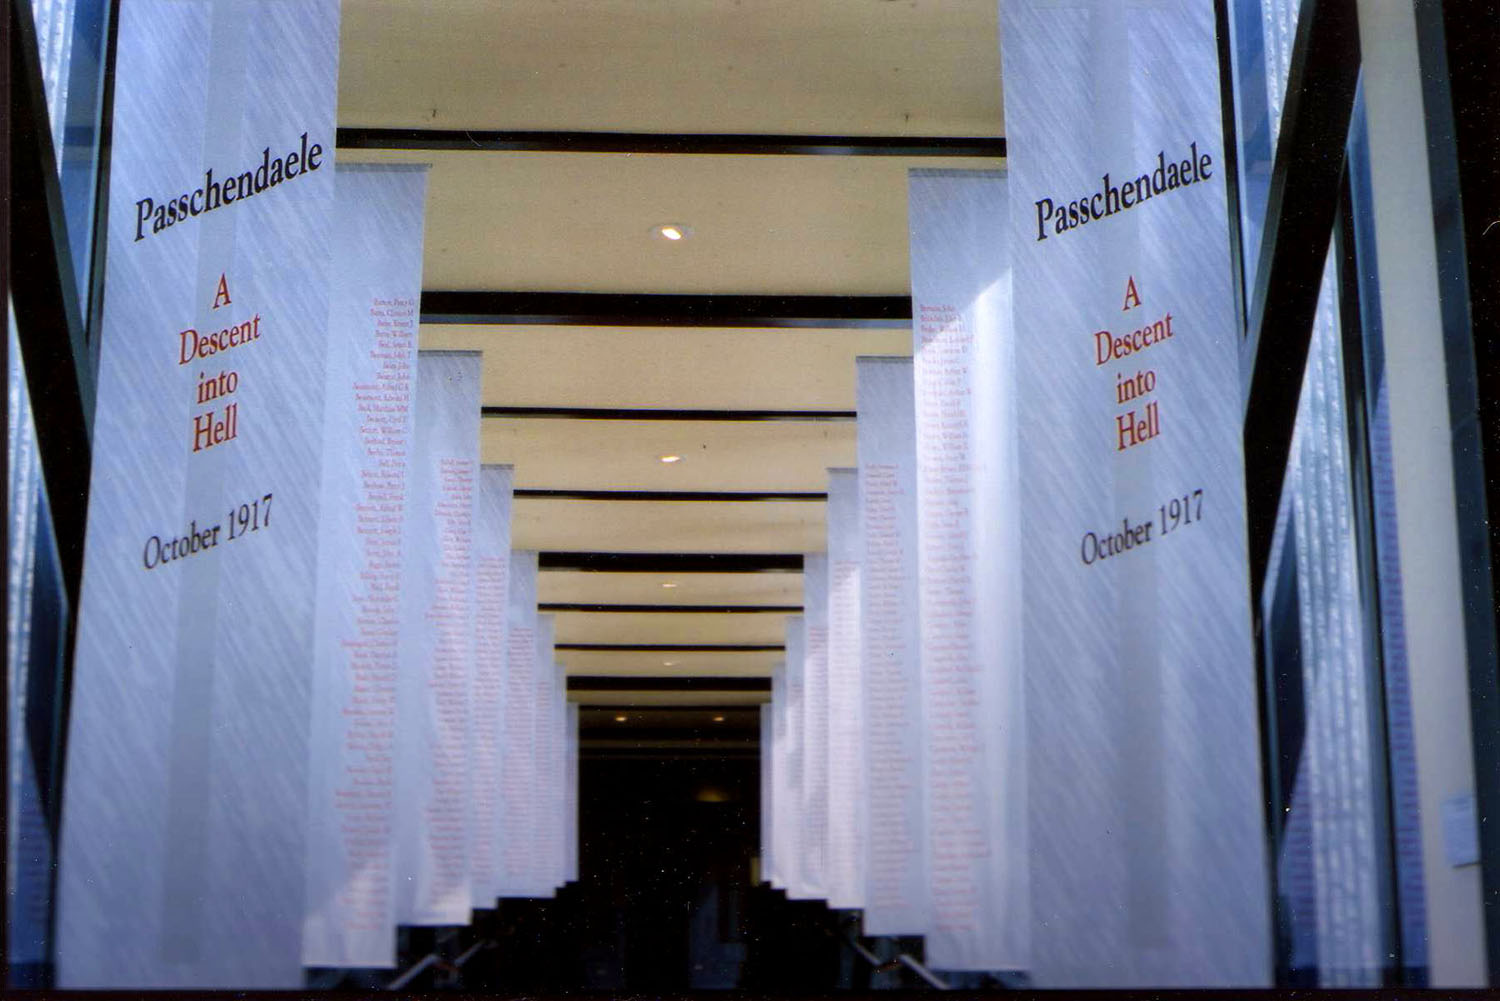 Entrance banners